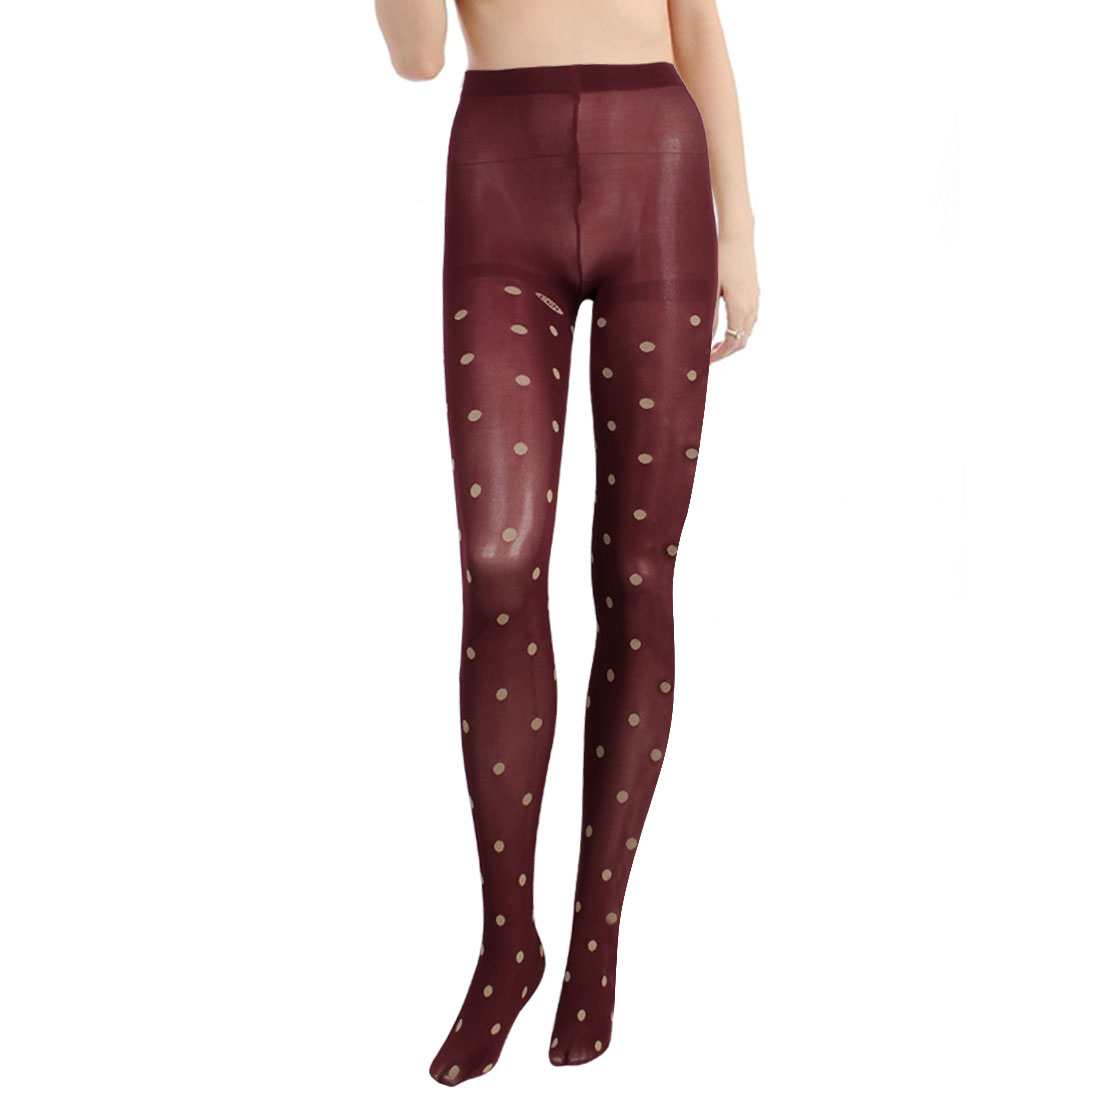 Polka Dots Print Full Footed Leggings Thin Tights Burgundy XS for Women